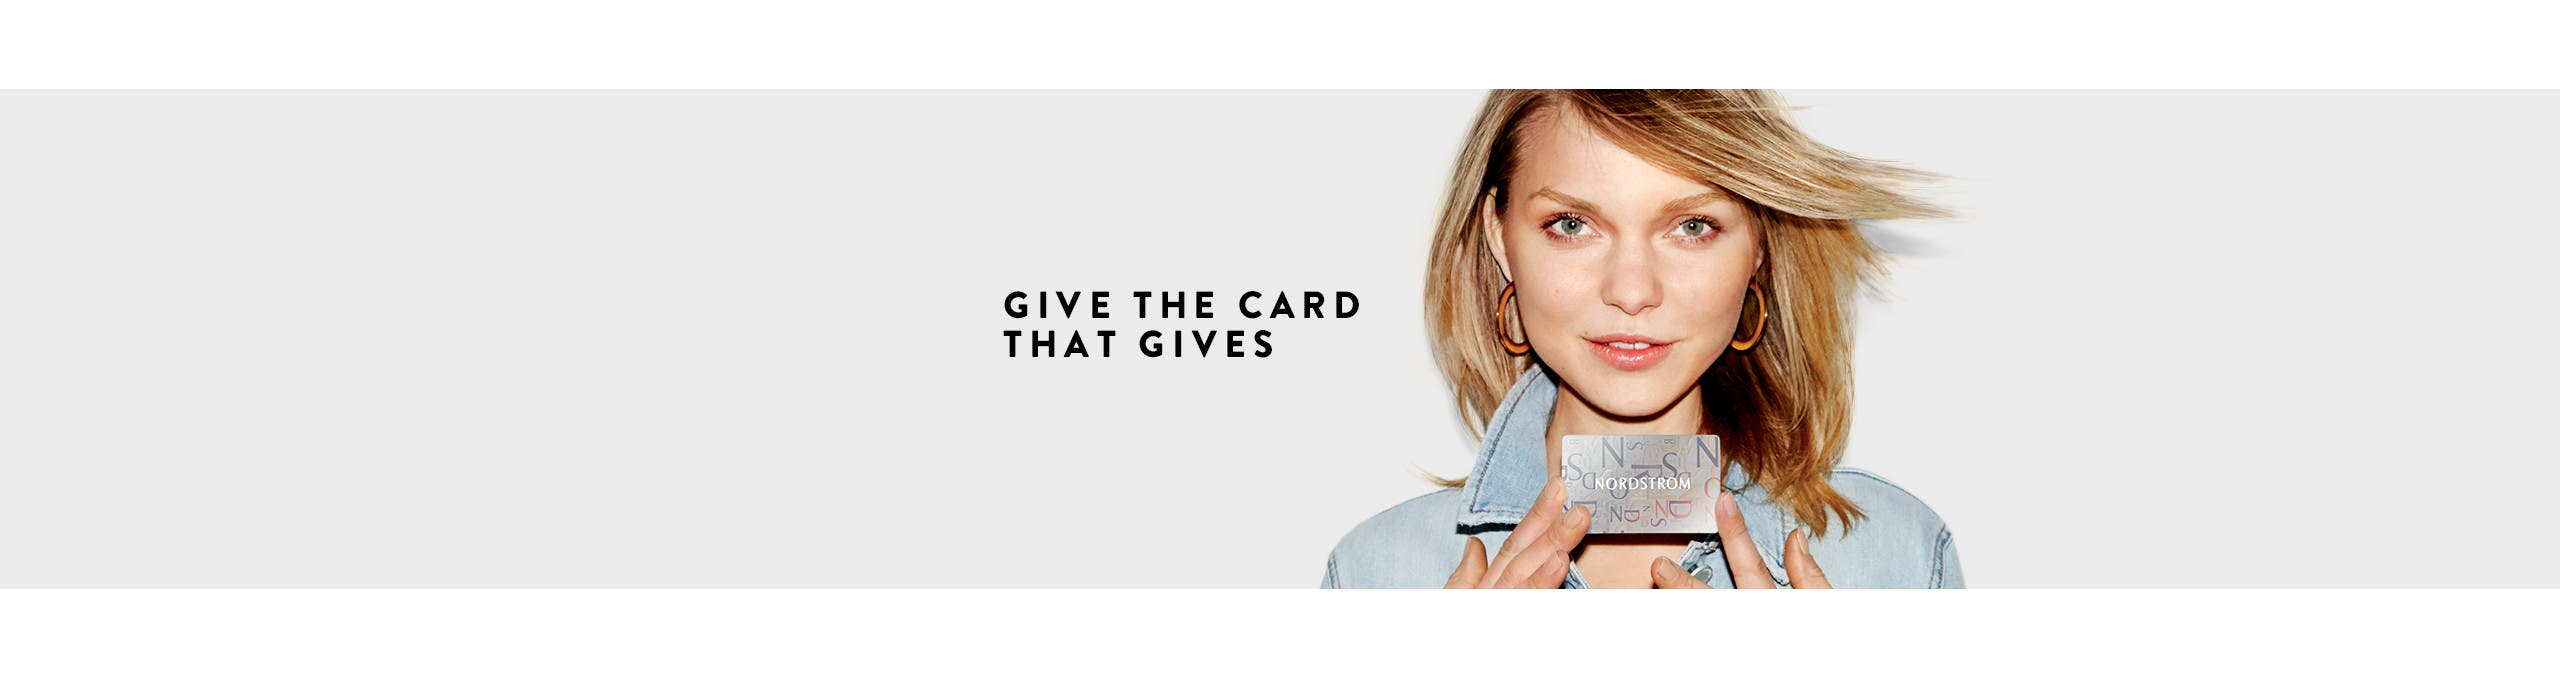 Give the card that gives.